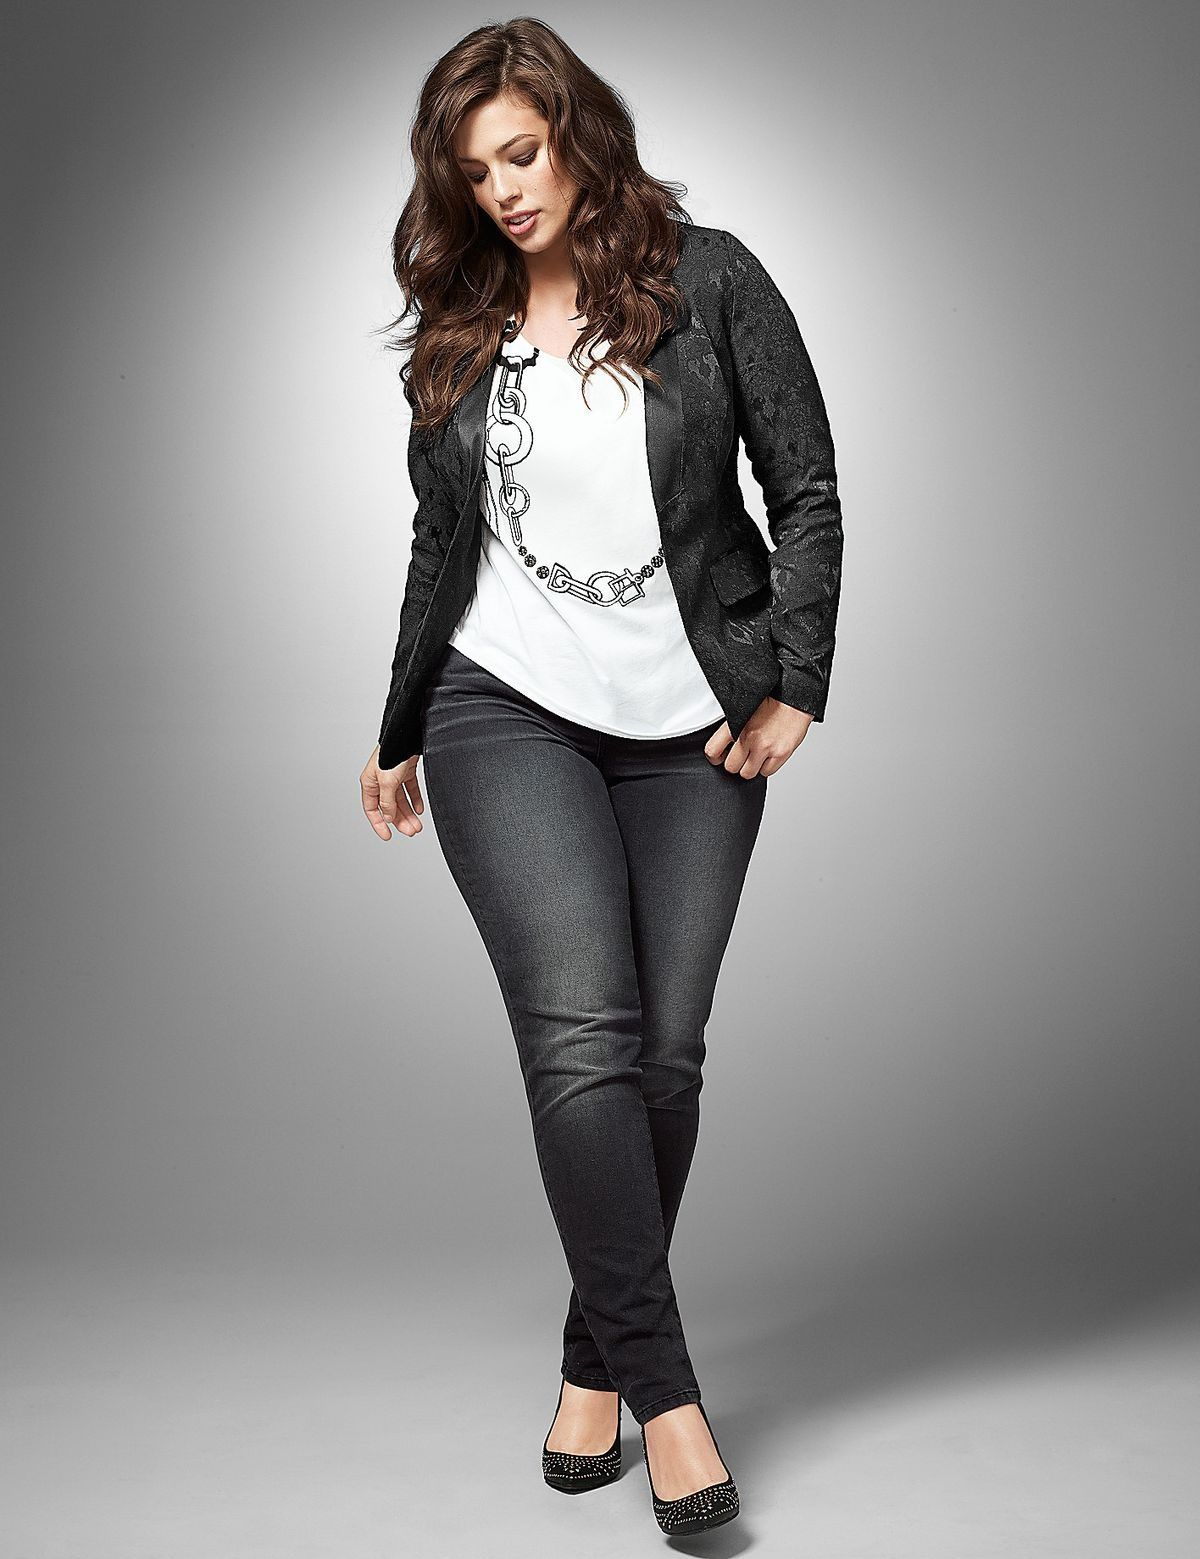 76683a3cb9c Designer plus size clothing - Most preferred Women Outfit